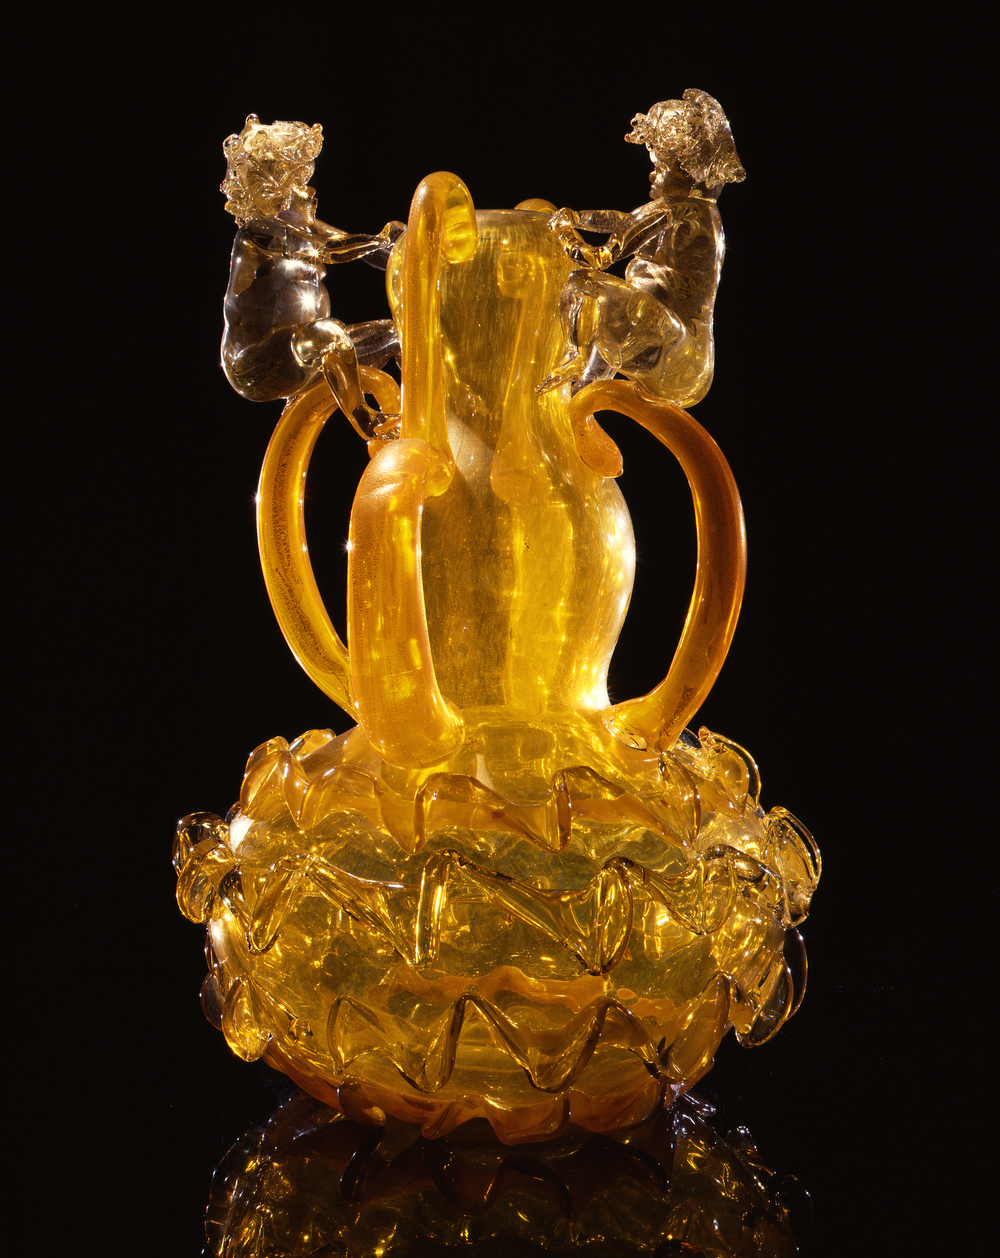 Dale Chihuly,  Gilt Tangerine Putti Venetian with Handles and Ribbons  (1994, glass, 19 x 13 x 13 inches)